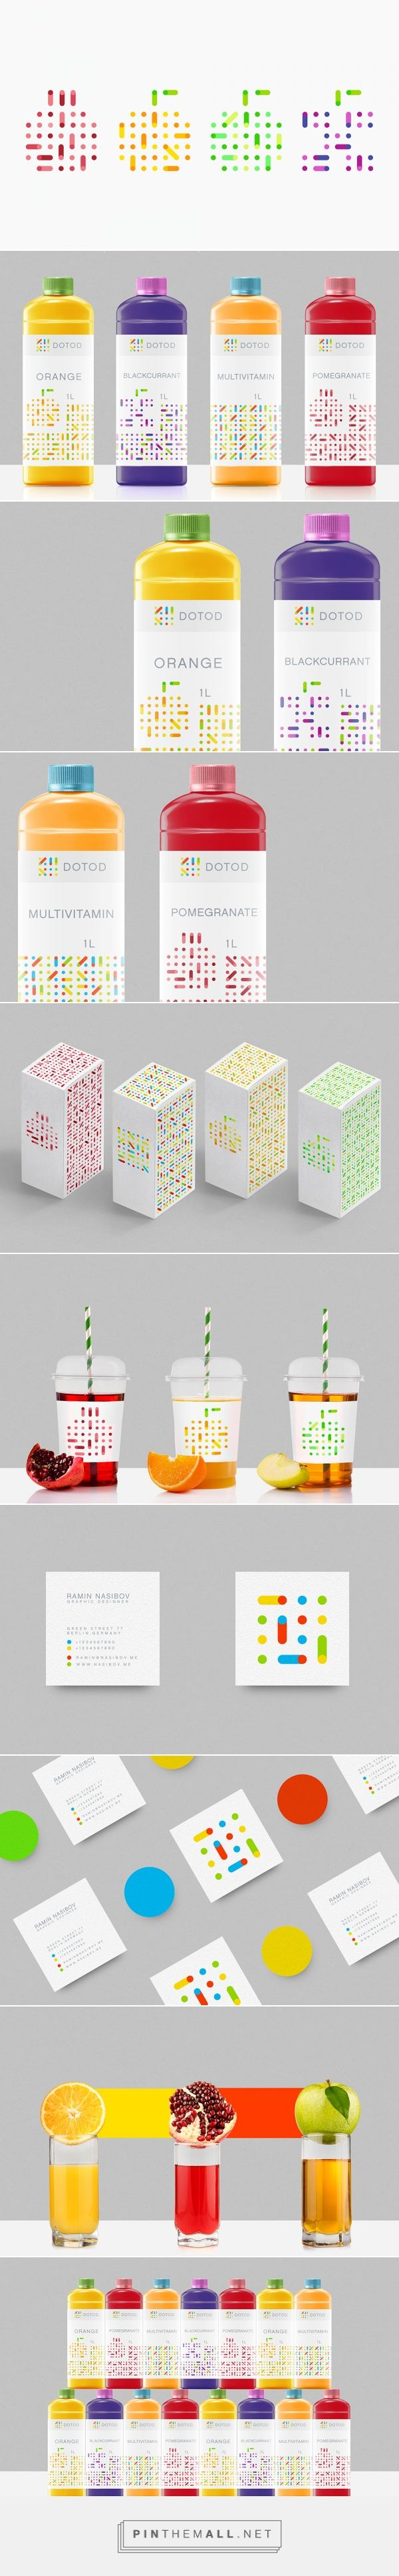 DOTOD /  DOTOD is a new brand of fruit juices from Munich, Germany / Ramin Nasibov